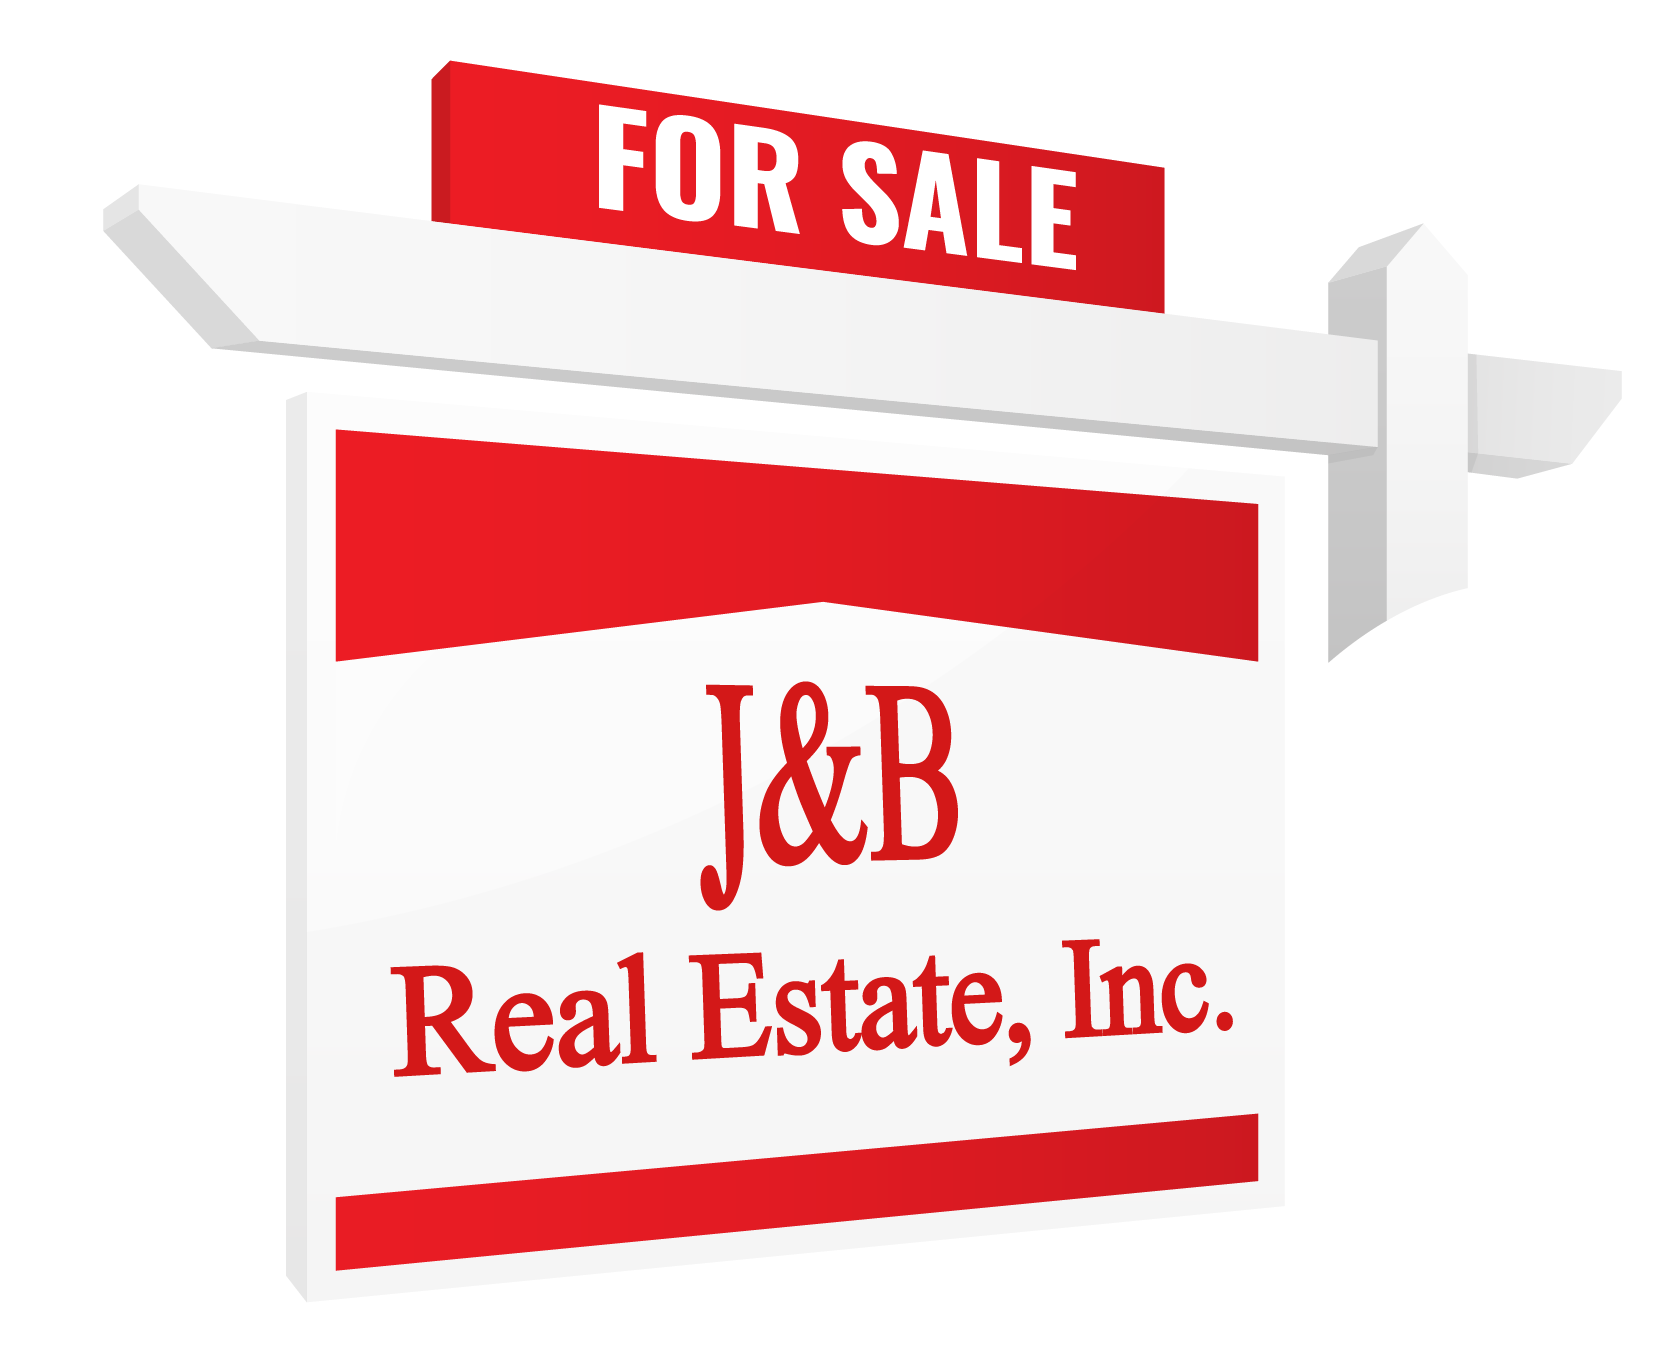 J&B Real Estate